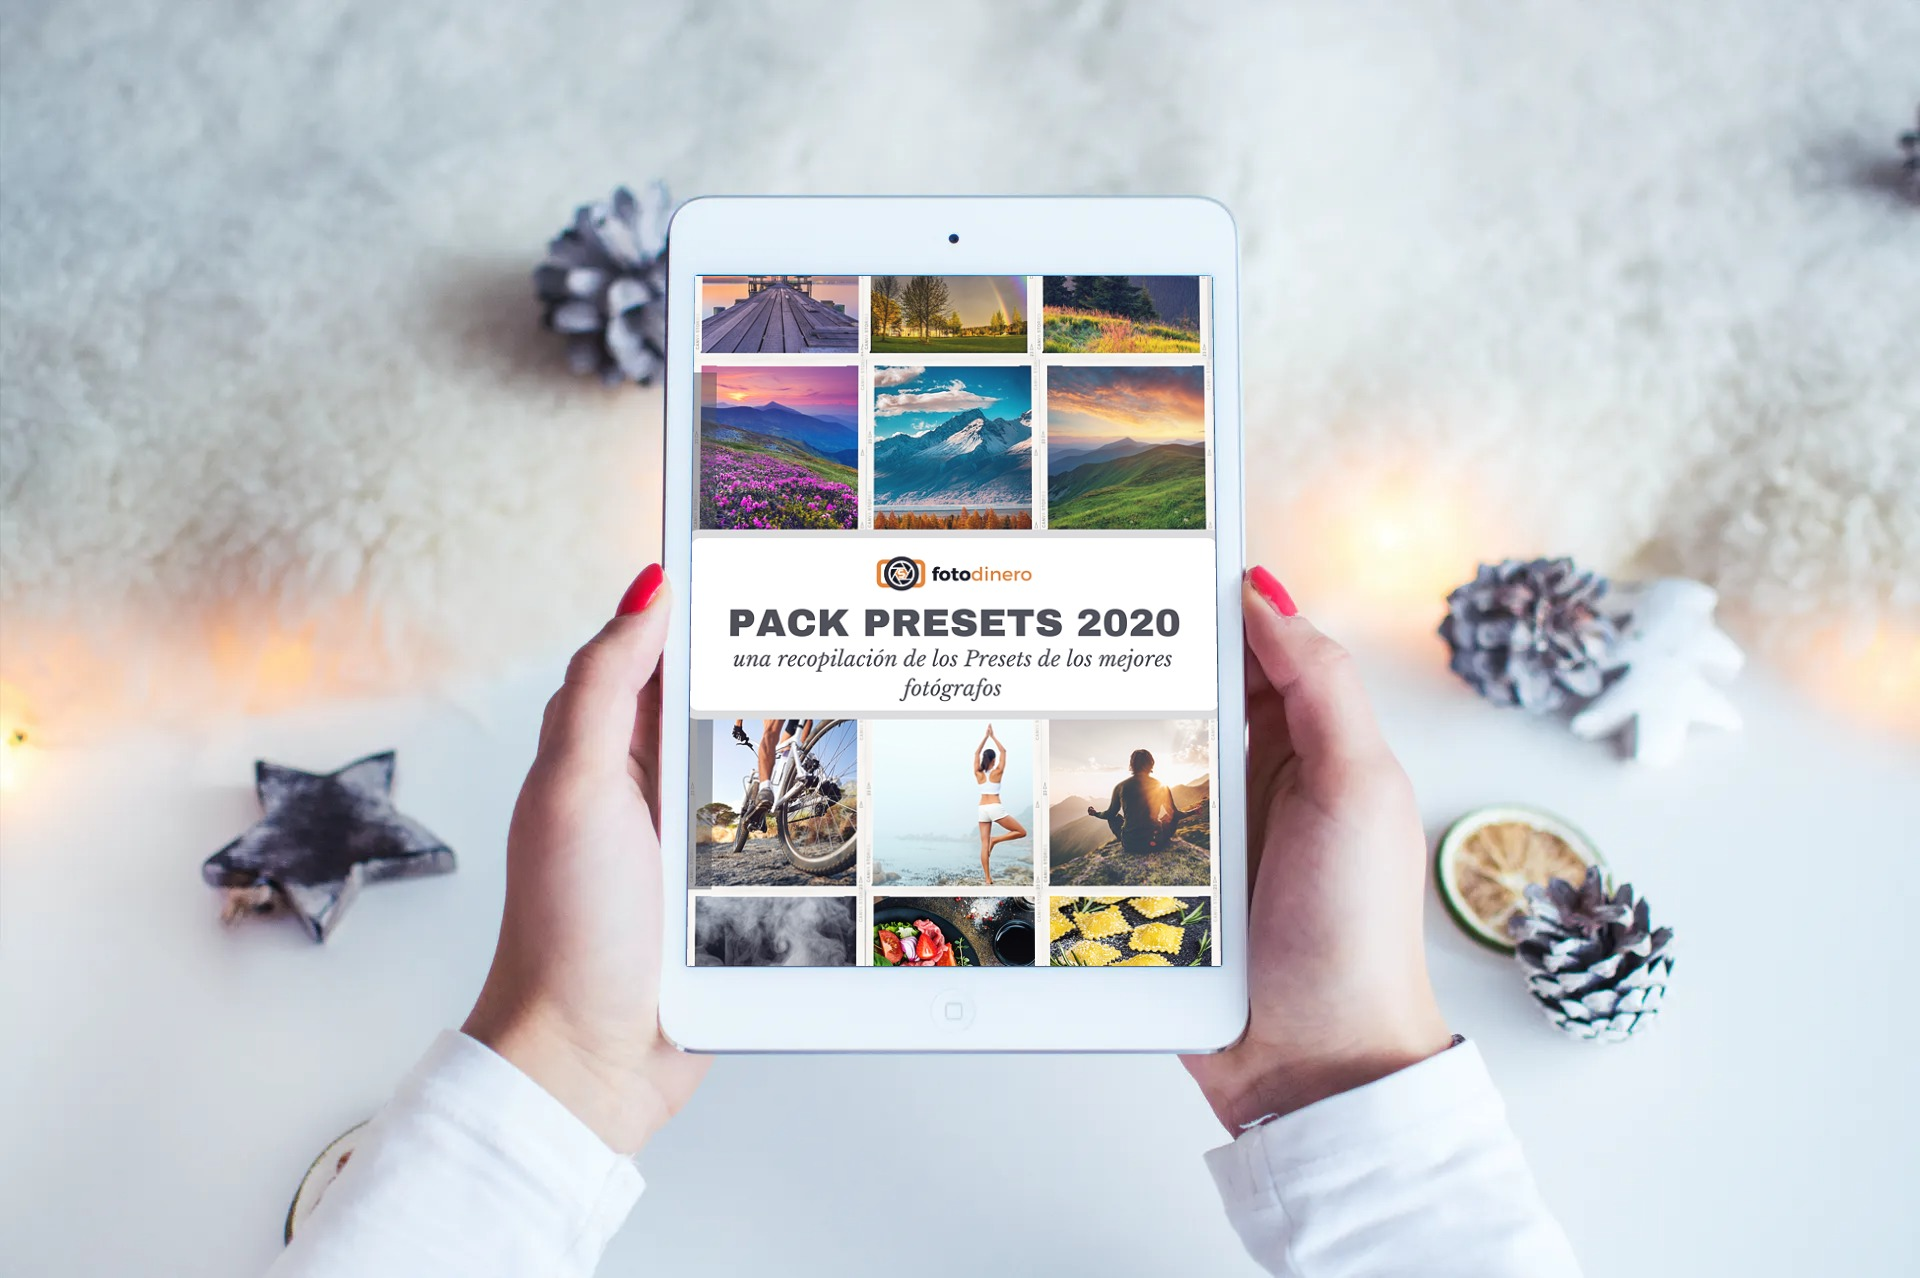 Pack Presets 2020